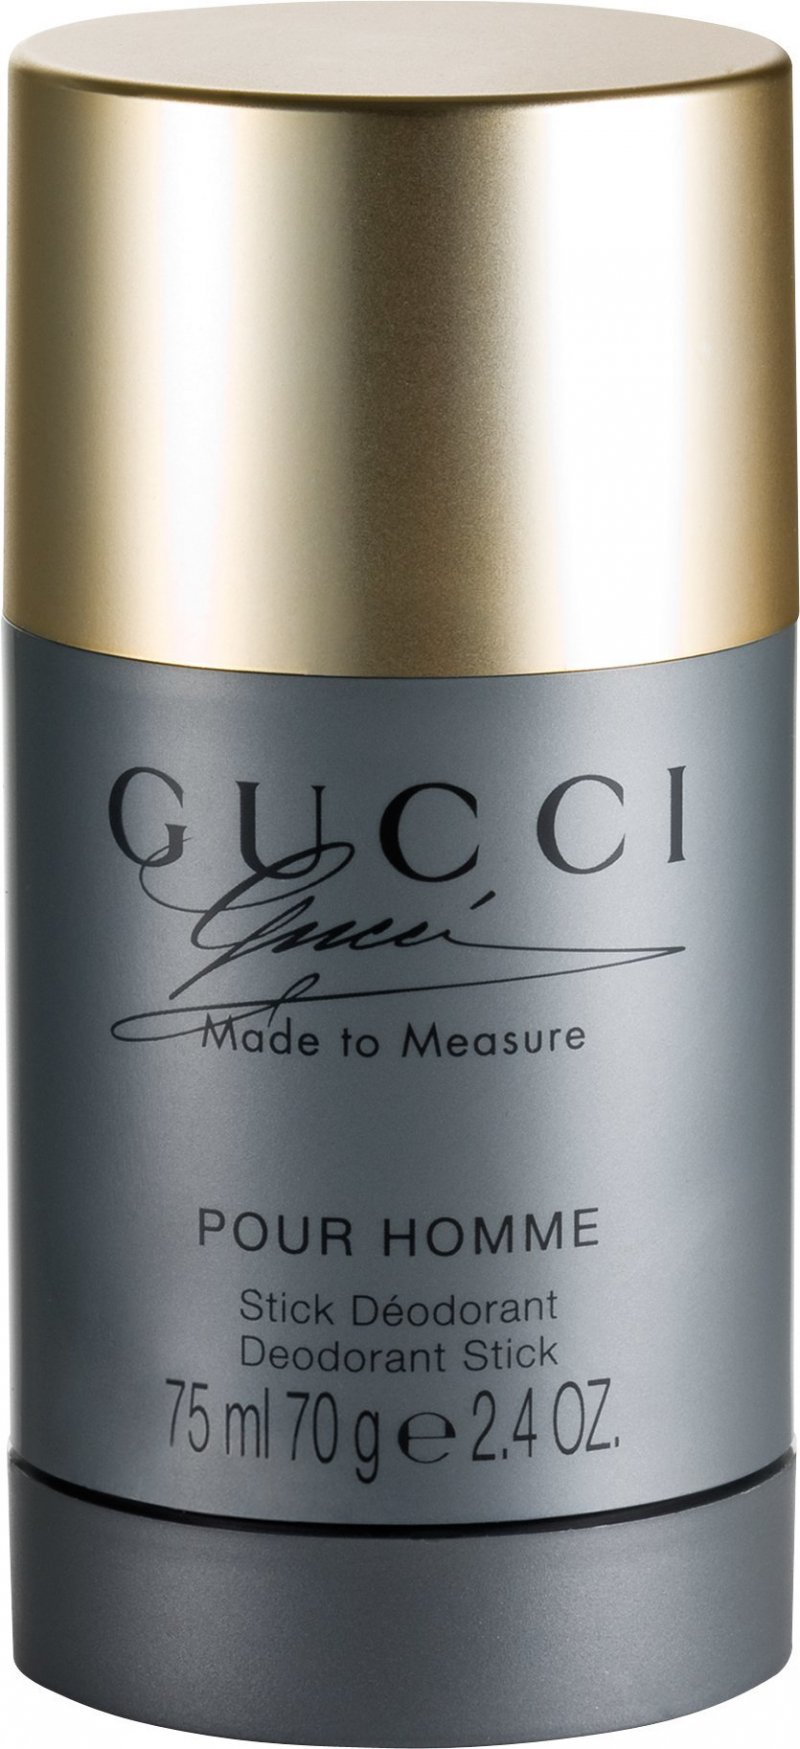 Image of   Gucci Made To Measure Deodorant Stick - 75 Ml.